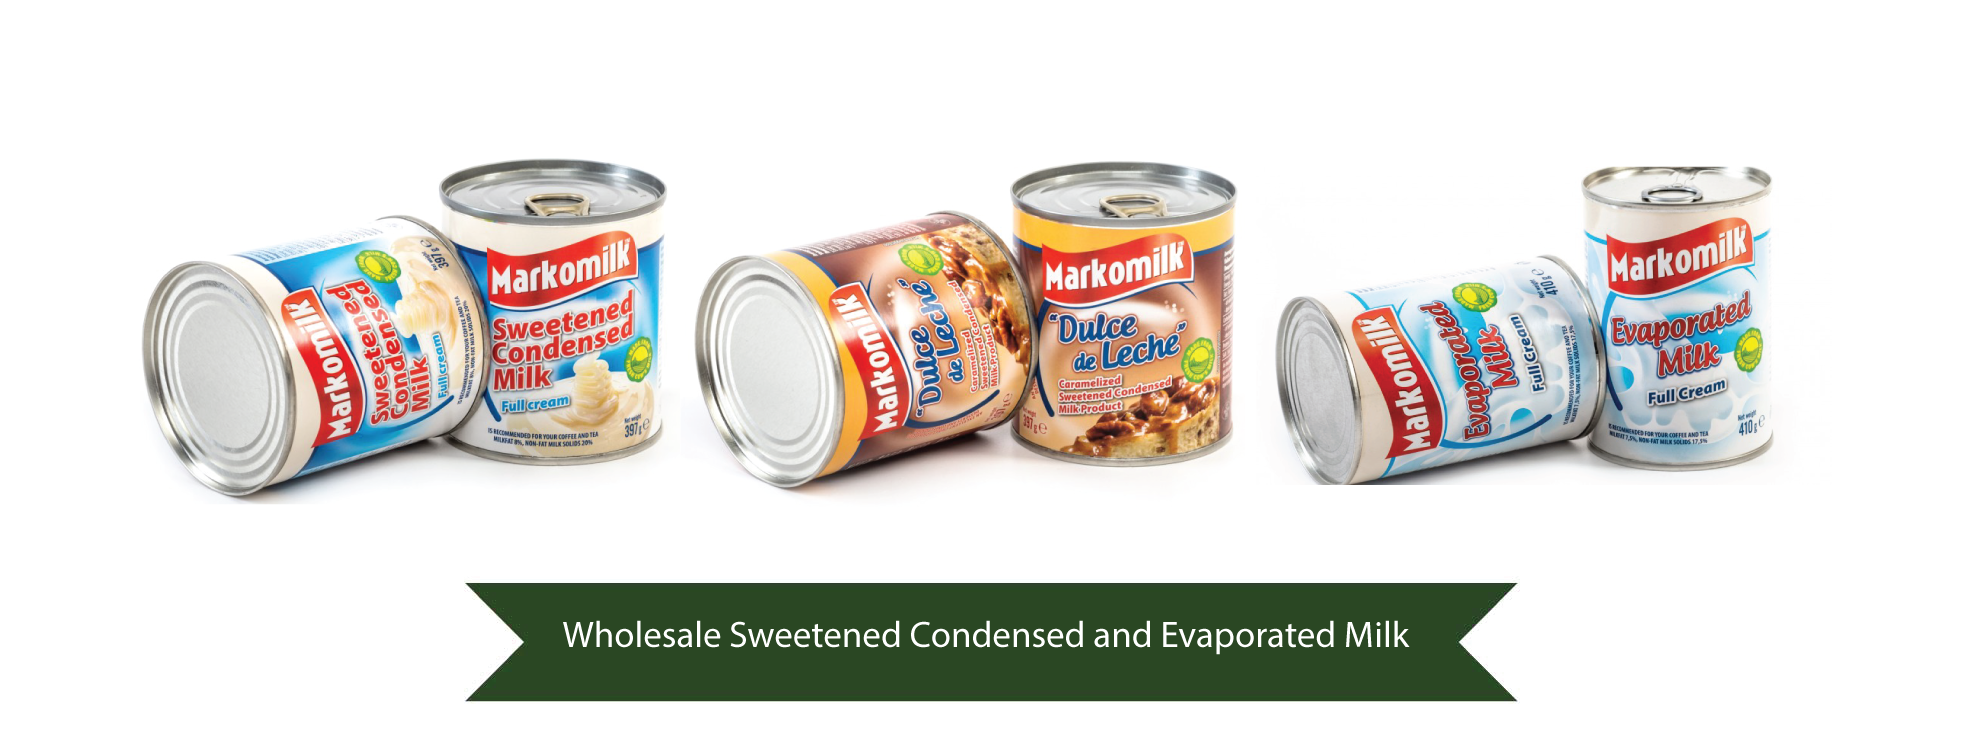 Wholesale Condensed and Evaporated Milk